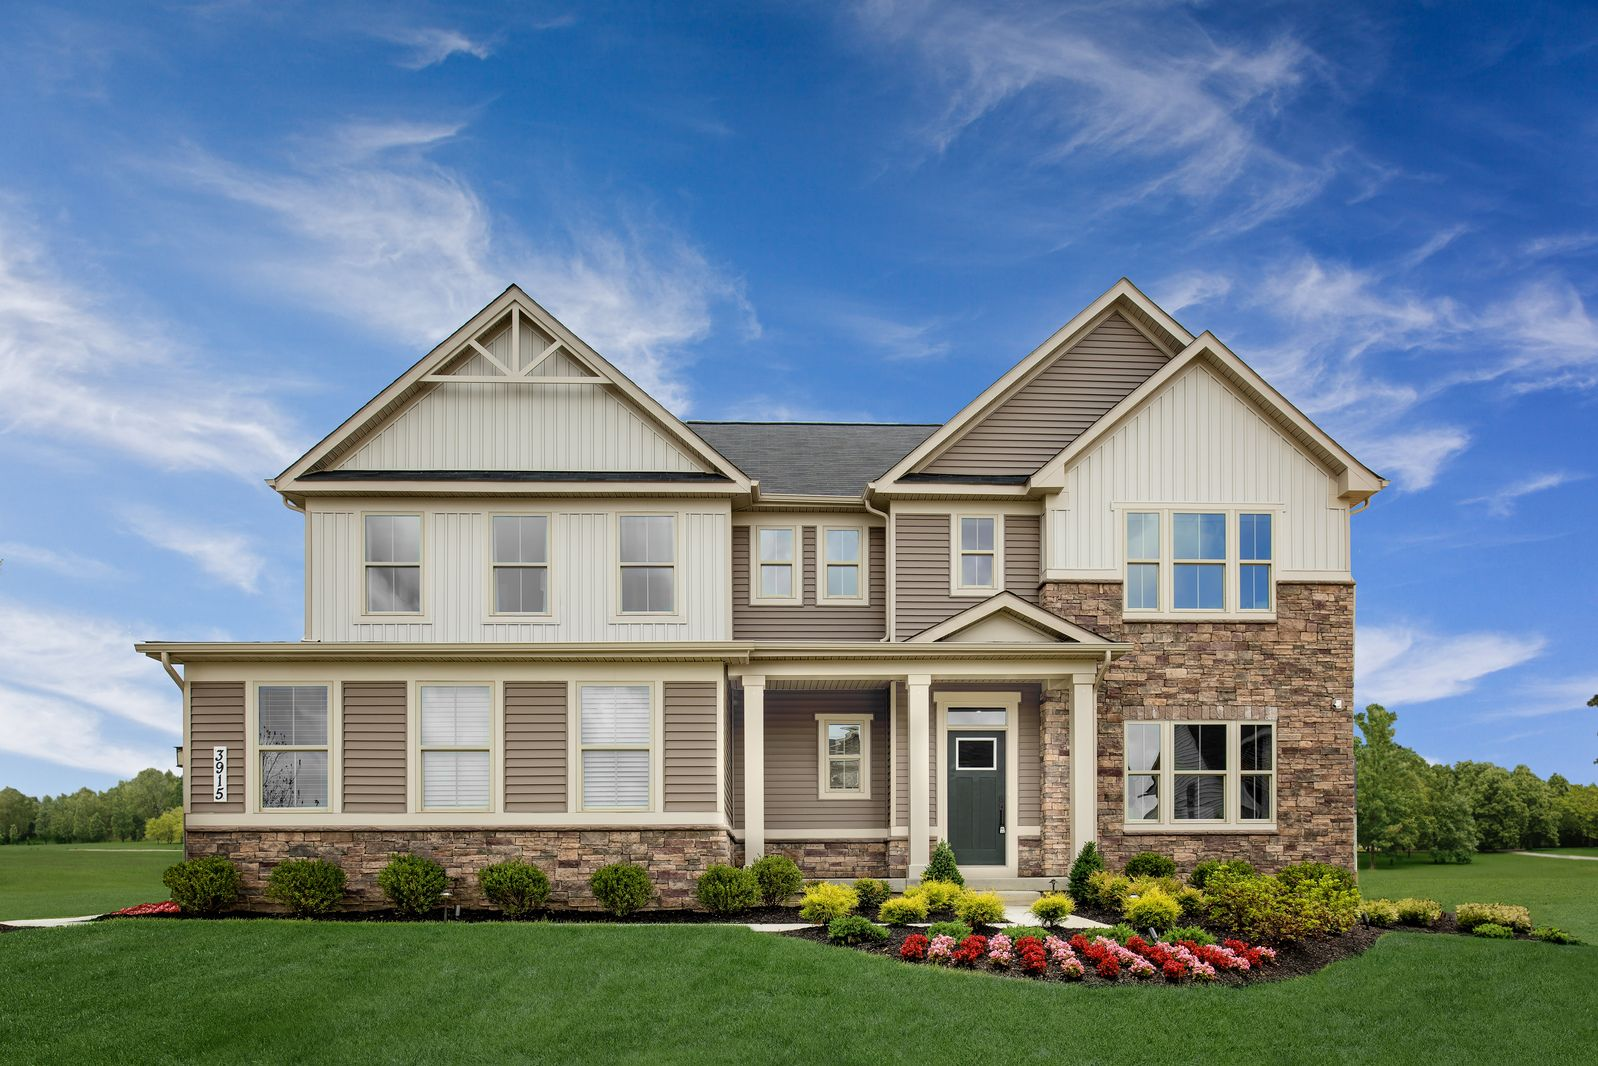 It all adds up to a better lifestyle!:New floorplans with finished basement & side entry garage included.Schedule your visit for a special incentive. We'll double it to $1,000 thru July 31!